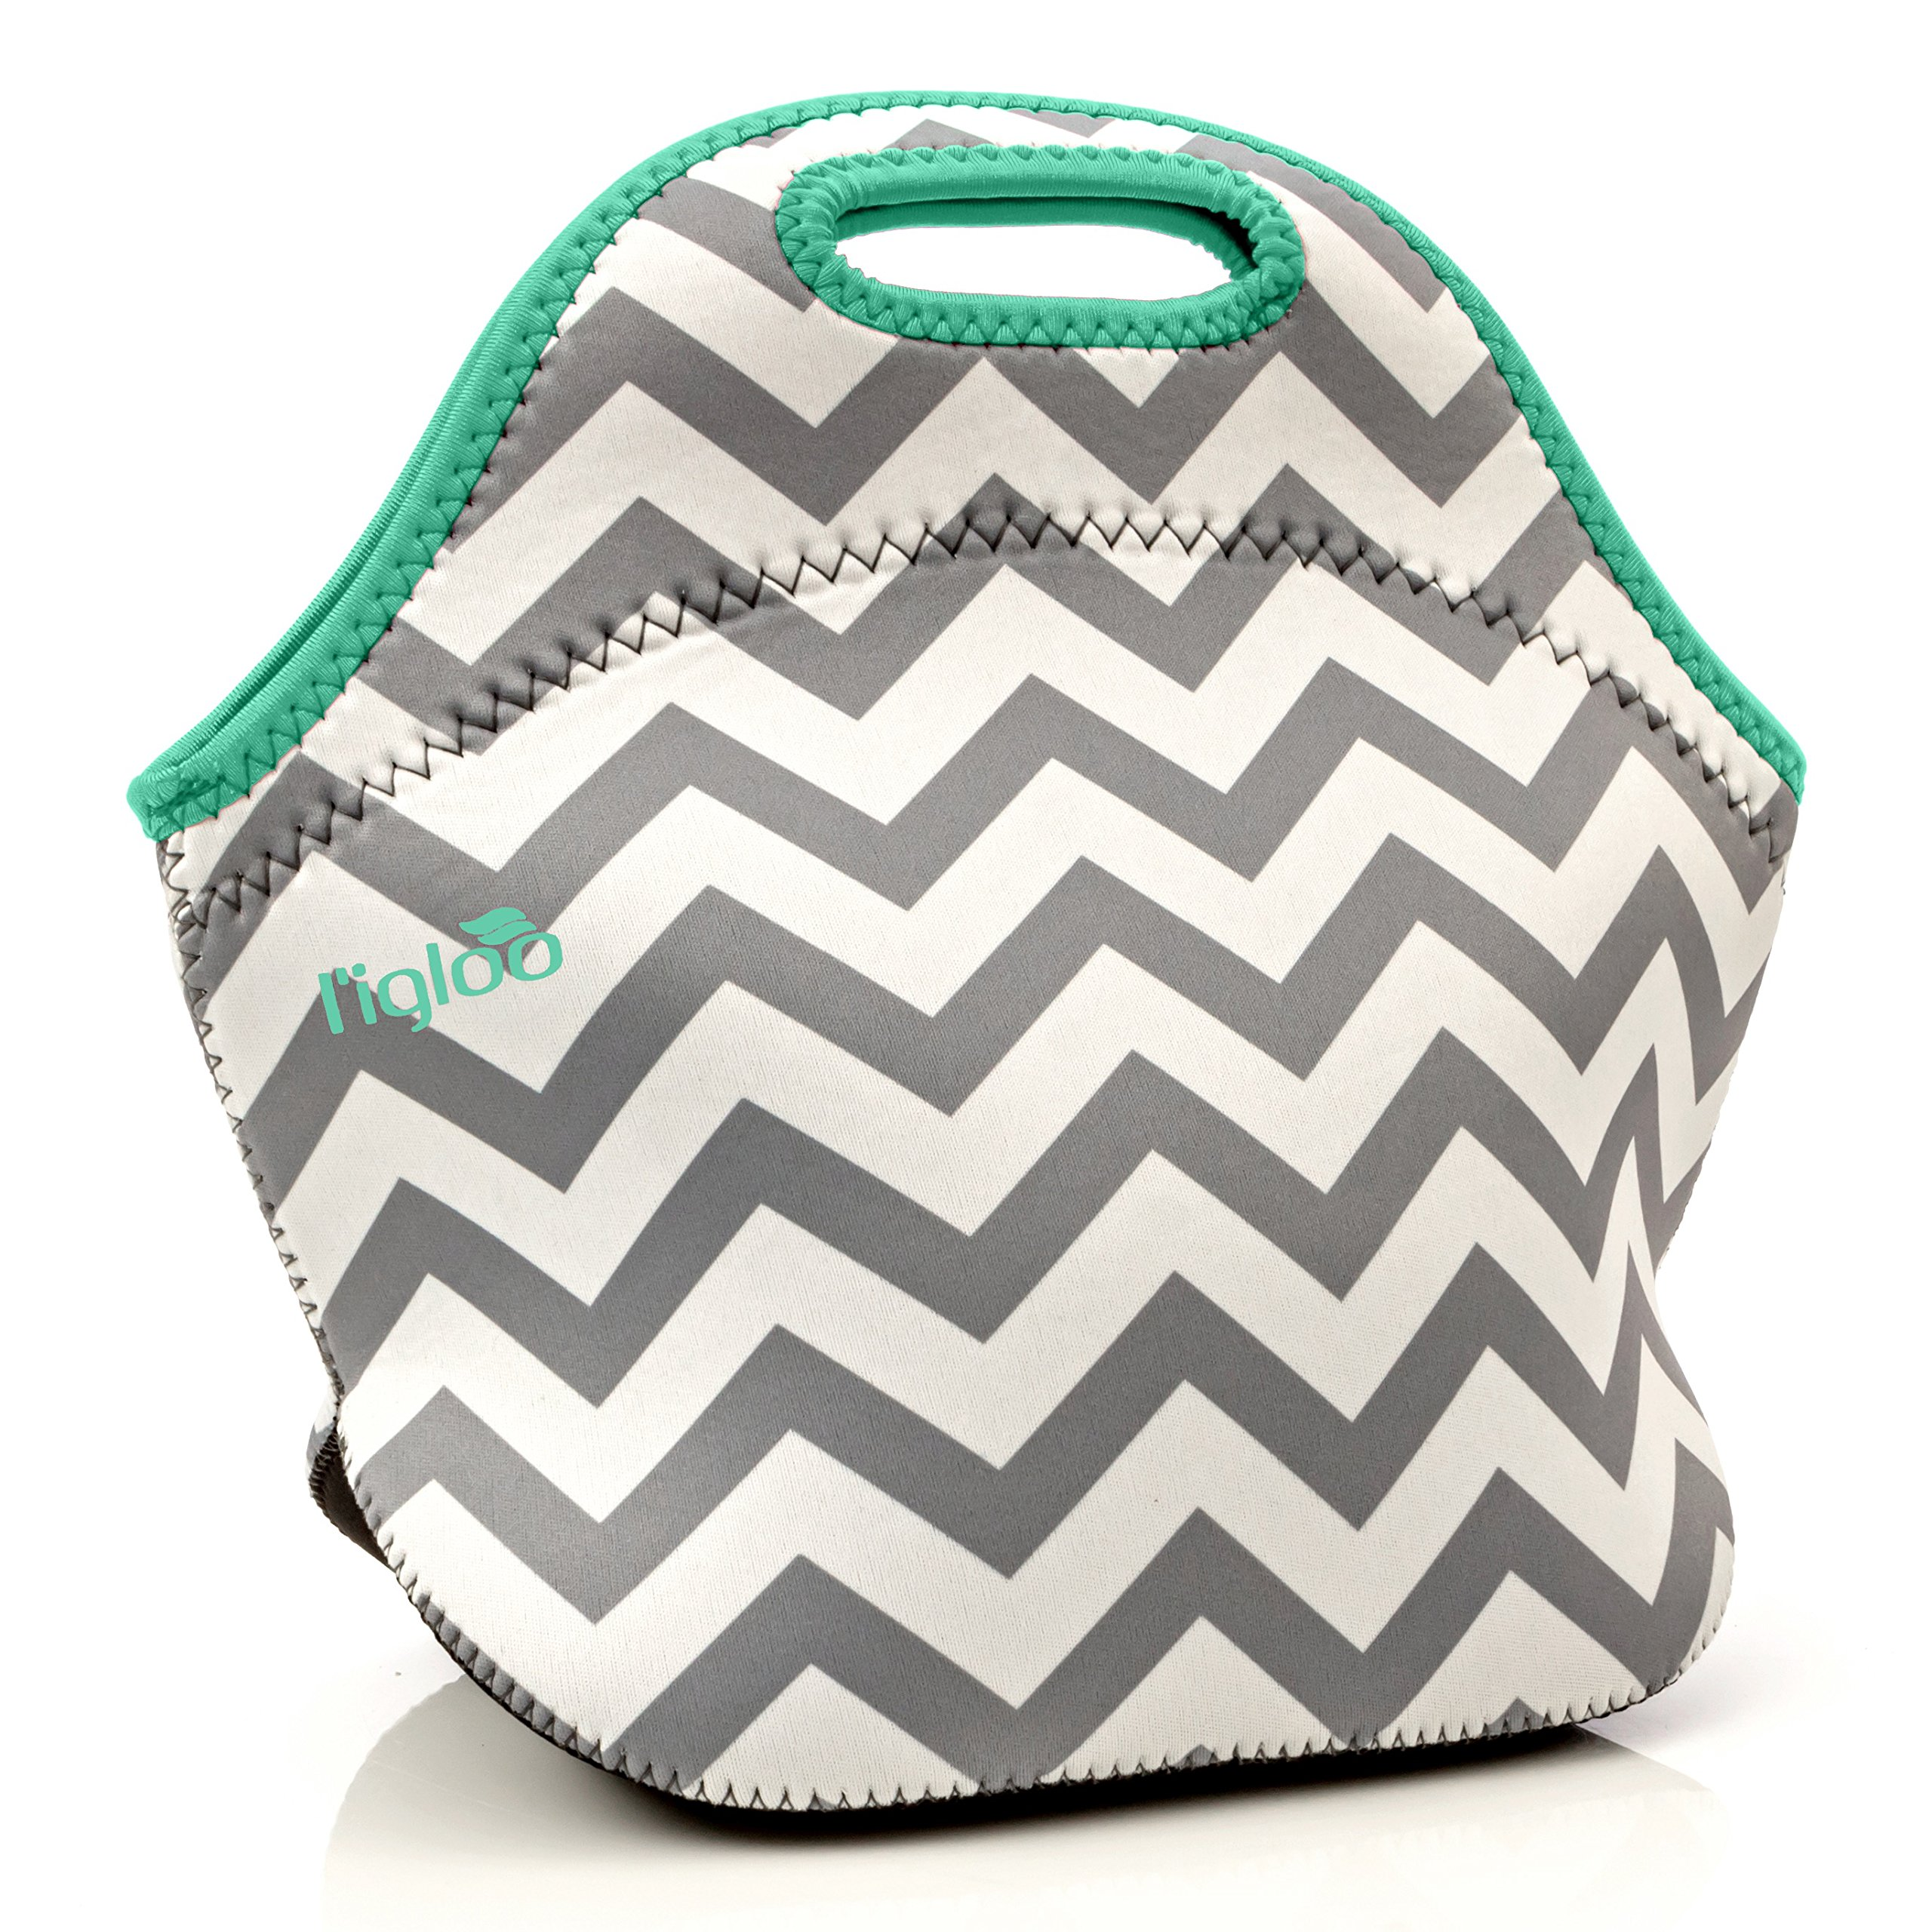 l'igloo Deluxe Neoprene Insulated Lunch Bag Extra Thick Lunch Box Tote Heavy Duty Zipper Use For Snacks, Baby Bottle Bag, Six Pack Bottle Carrier Cooler (Gray chevron/aqua trim)